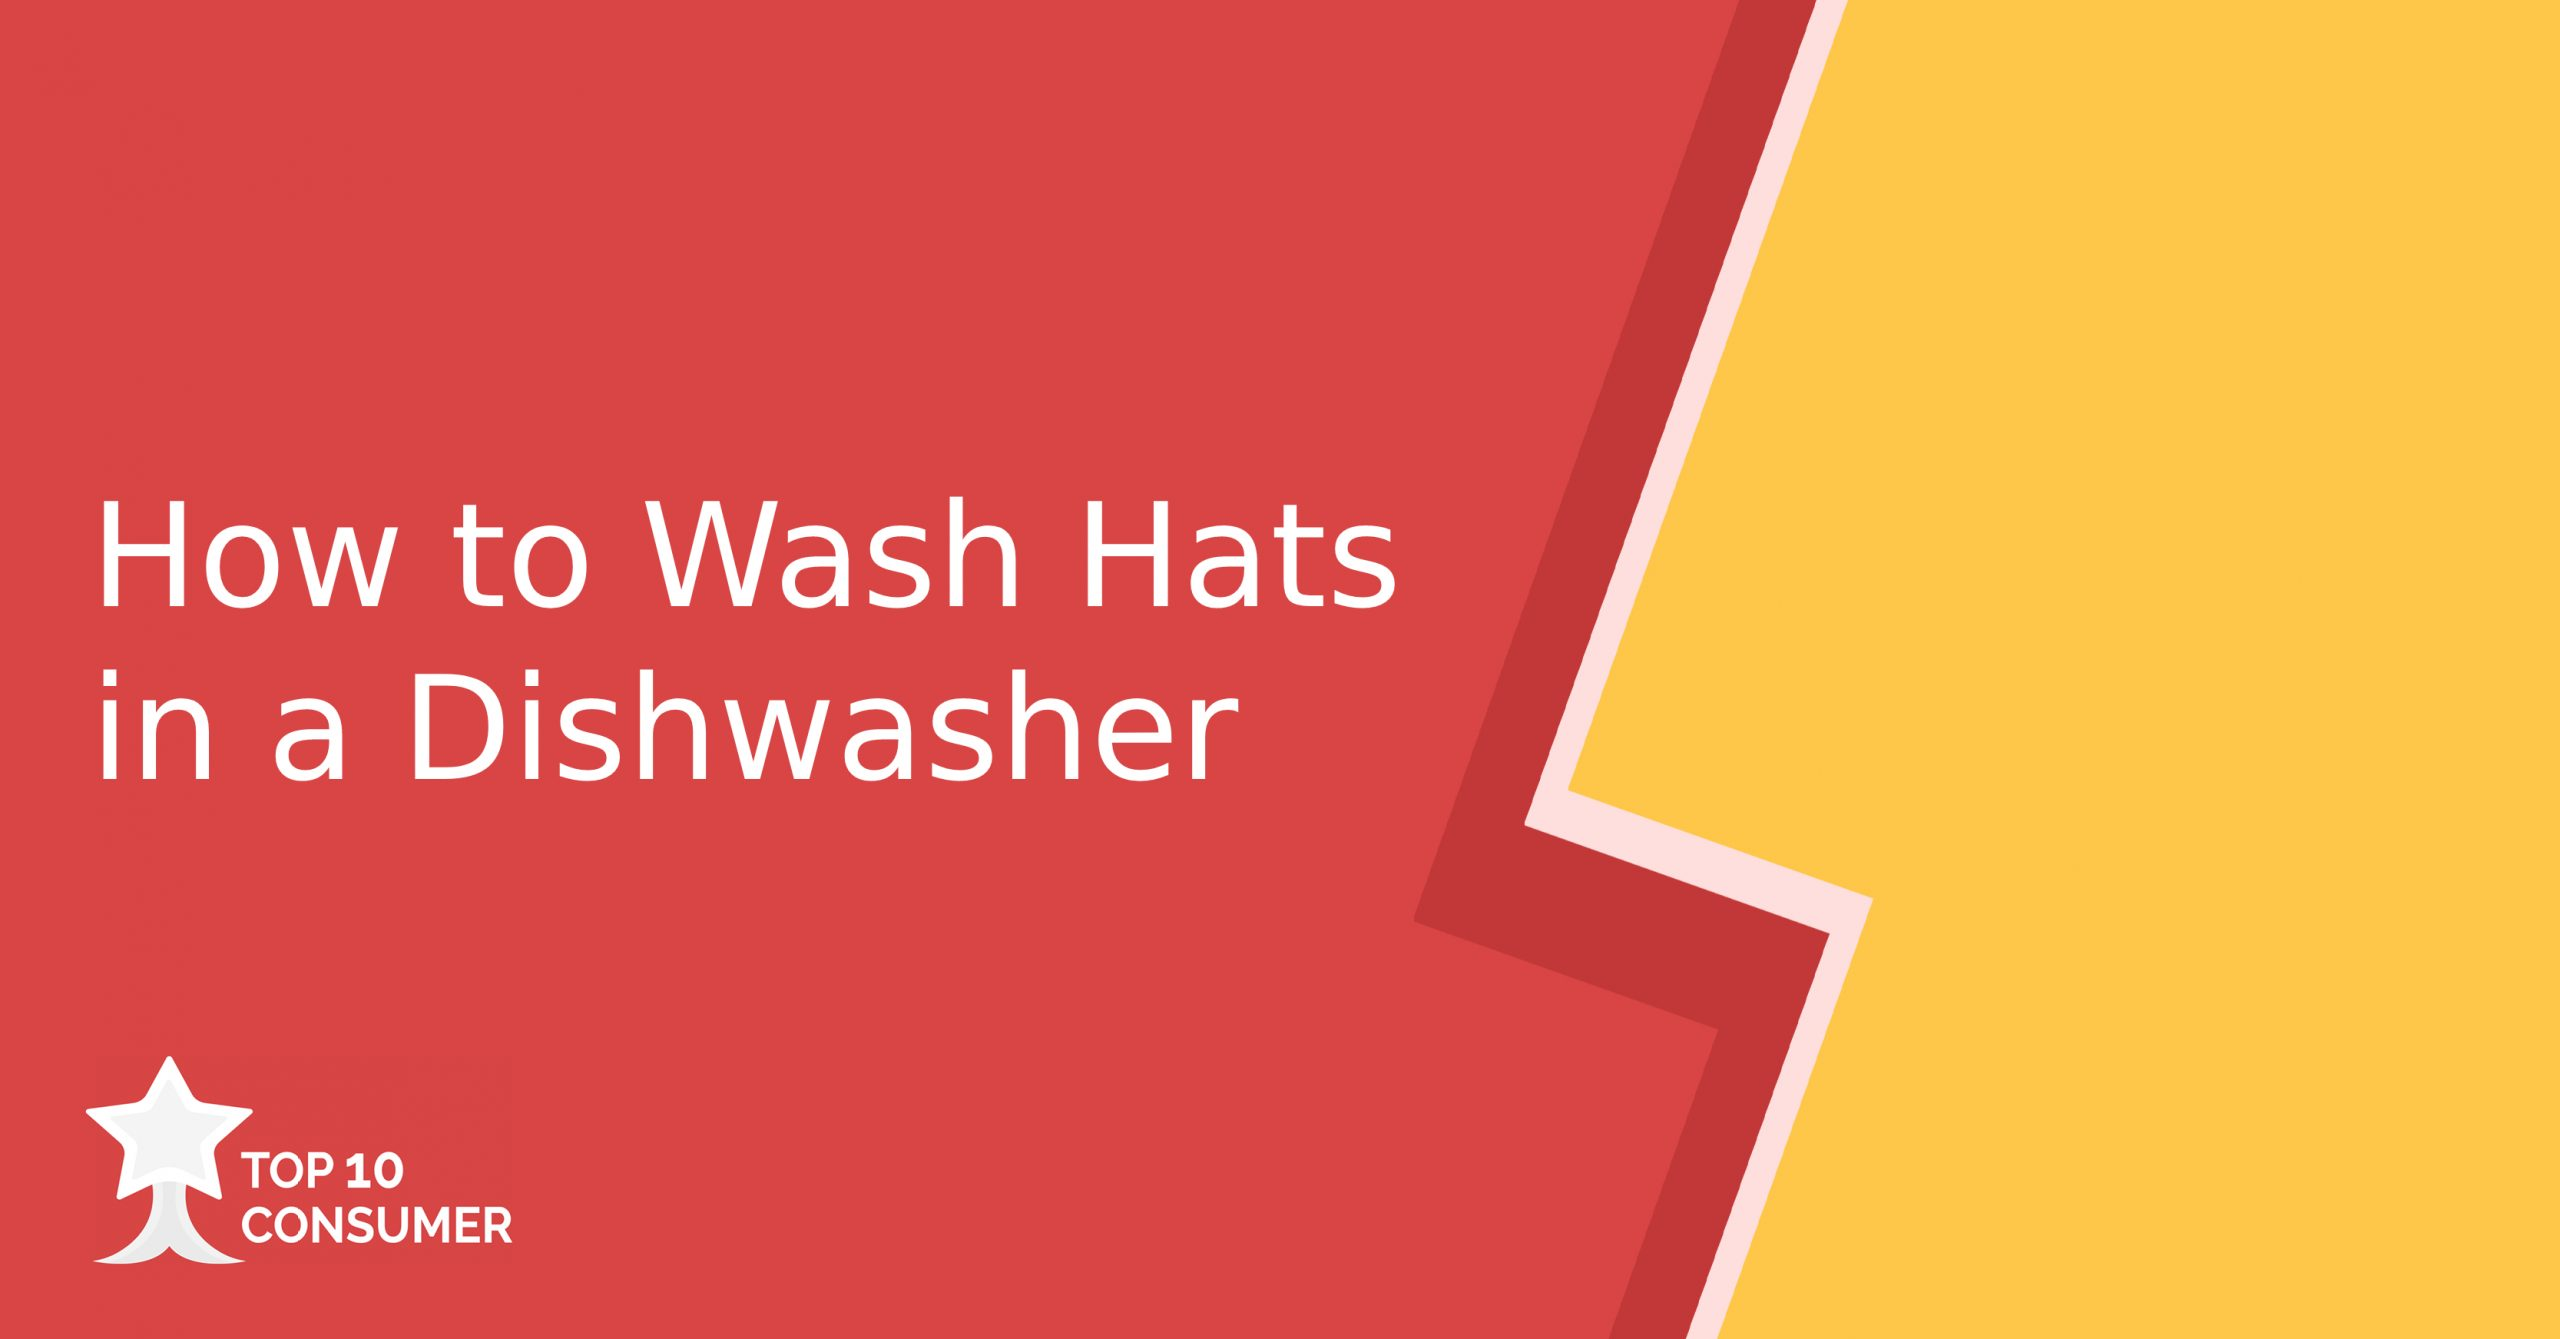 How to Wash Hats in a Dishwasher